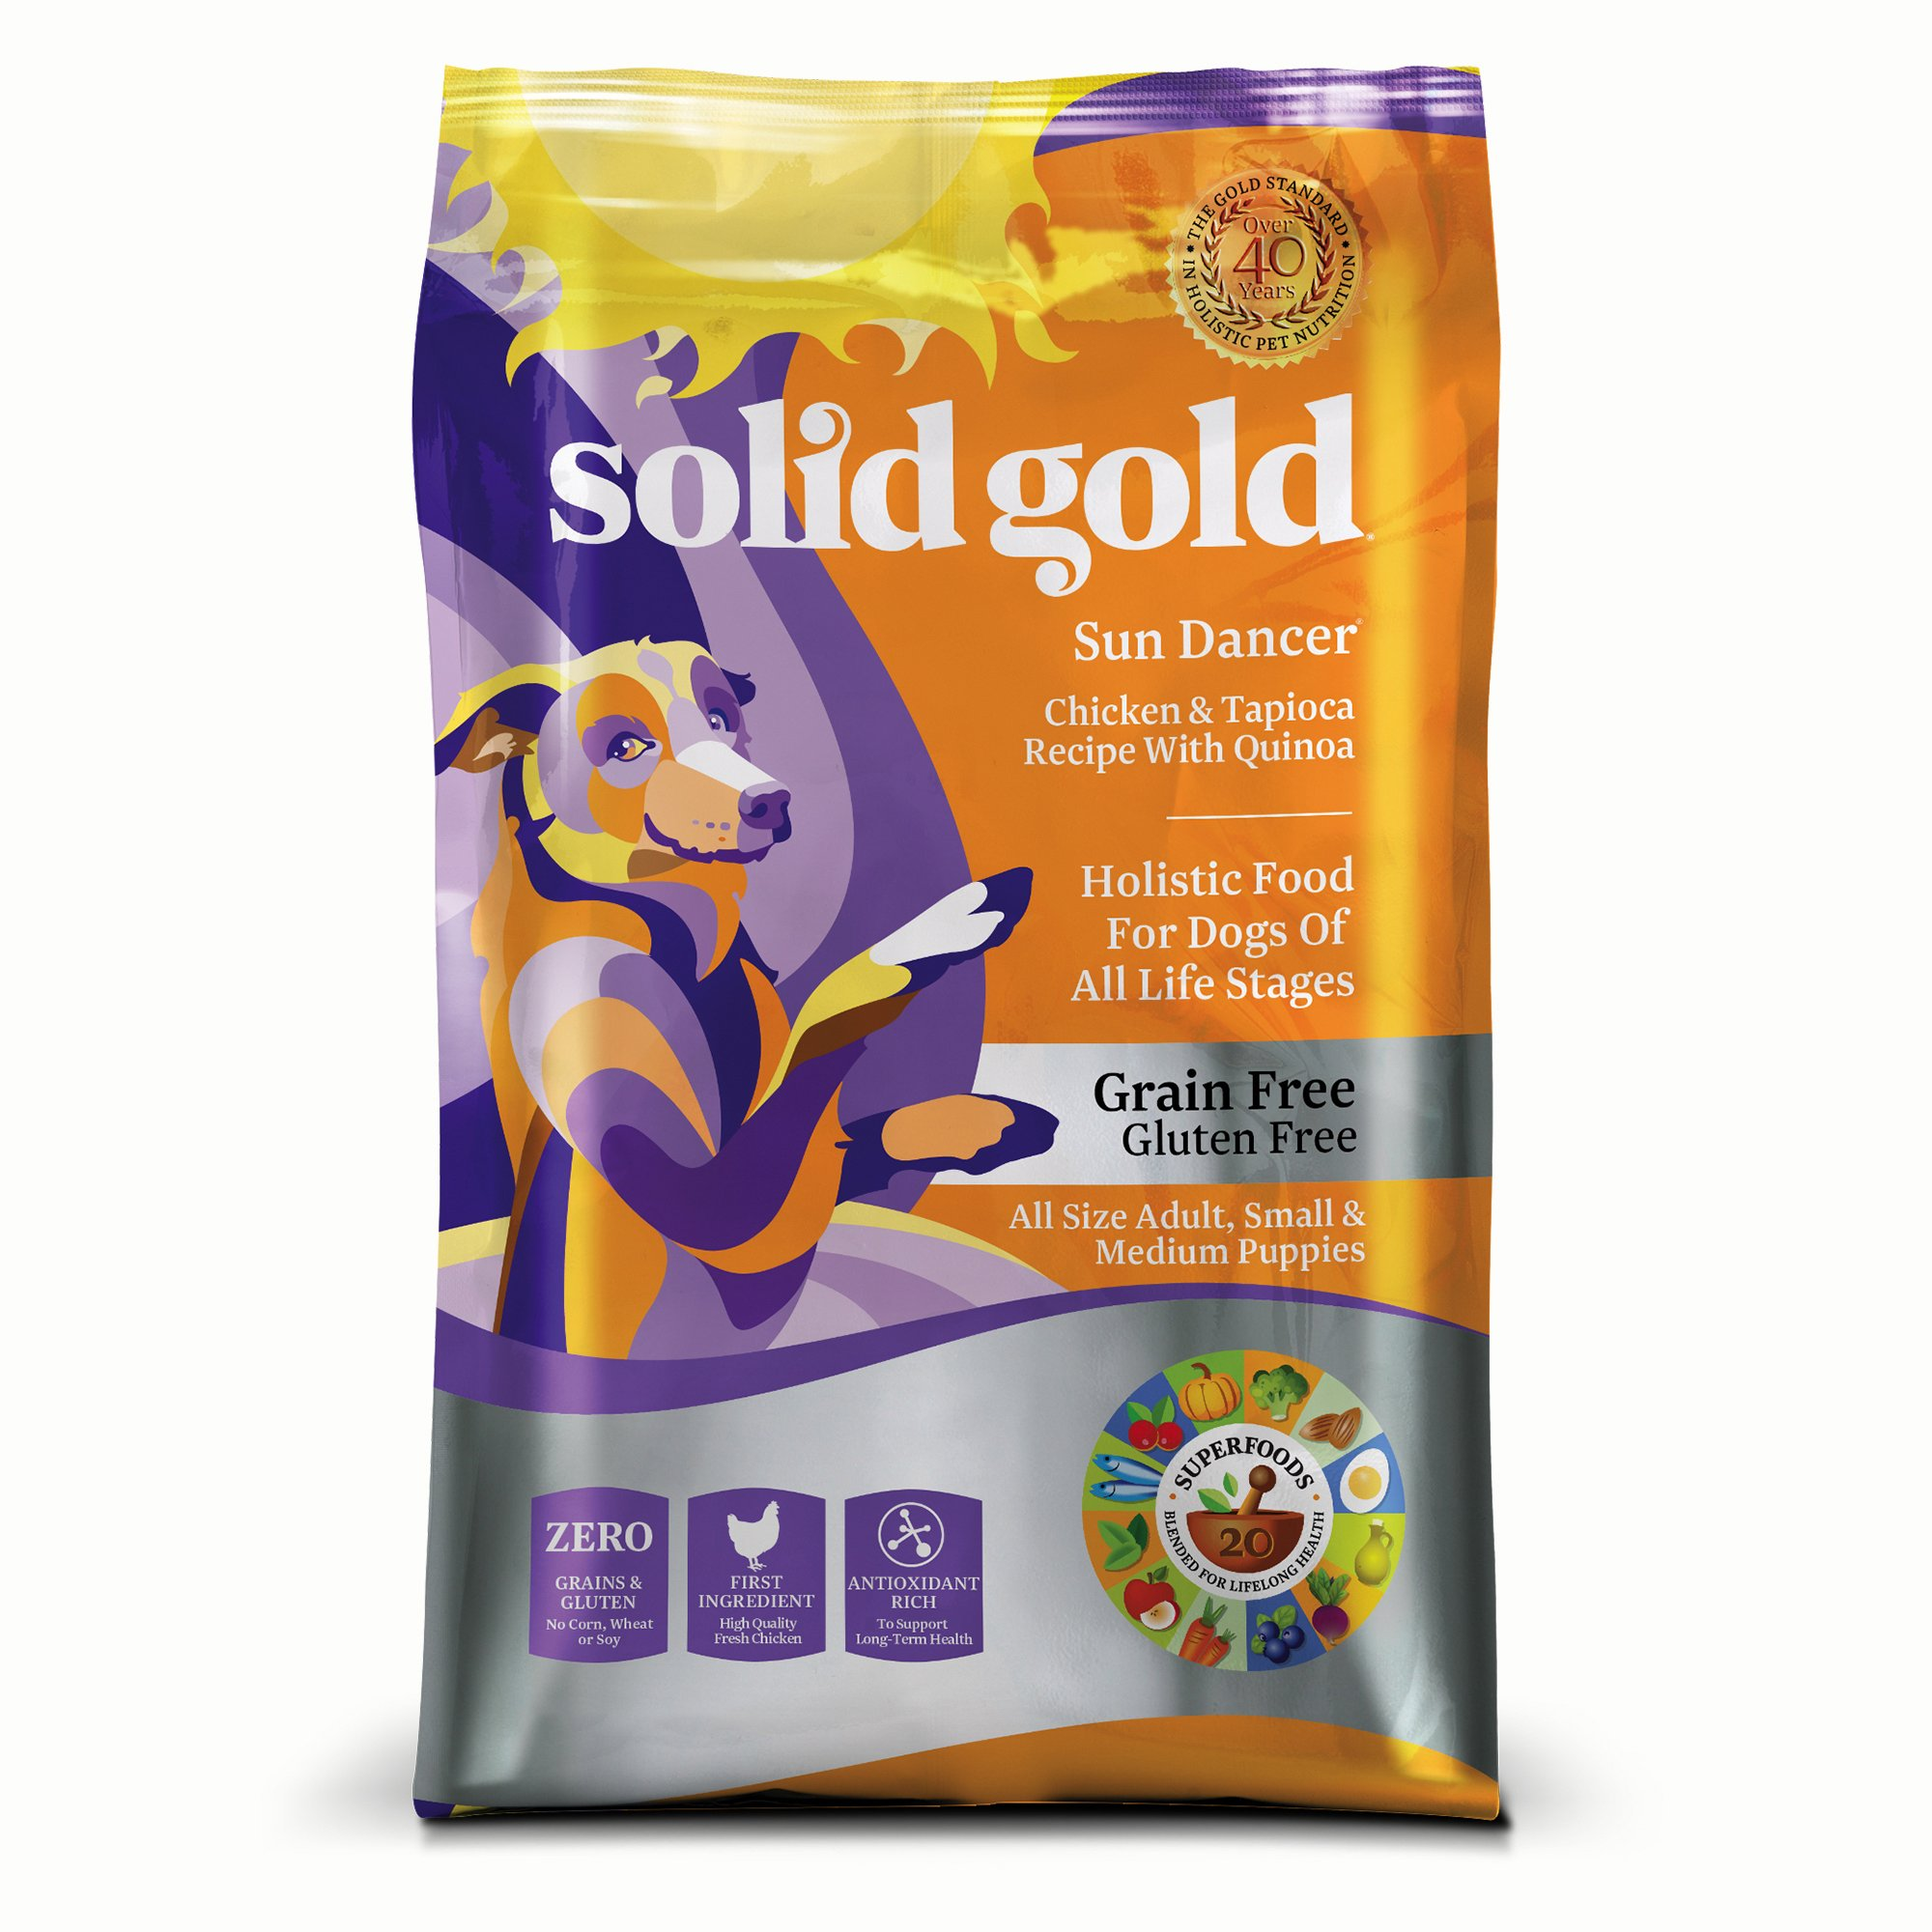 Solid Gold Sun Dancer Holistic Dry Dog Food, Chicken & Tapioca with Quinoa, Grain & Gluten Free, Moderately Active Dogs of All Life Stages, All Size Adult, Small & Medium Puppy, 24lb Bag